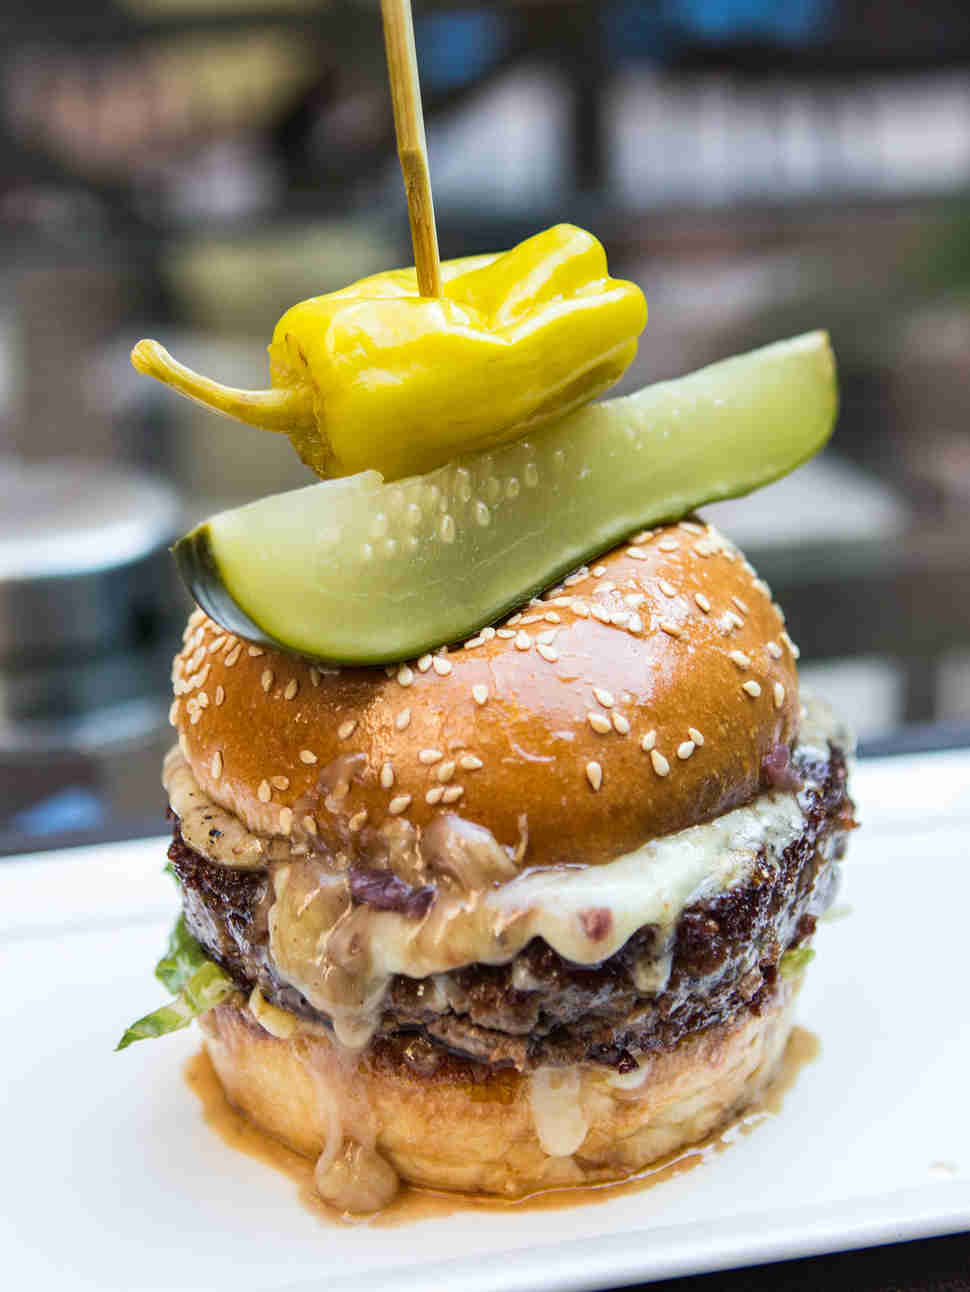 The 100 Best Burgers in America, Ranked by Our National Burger Critic